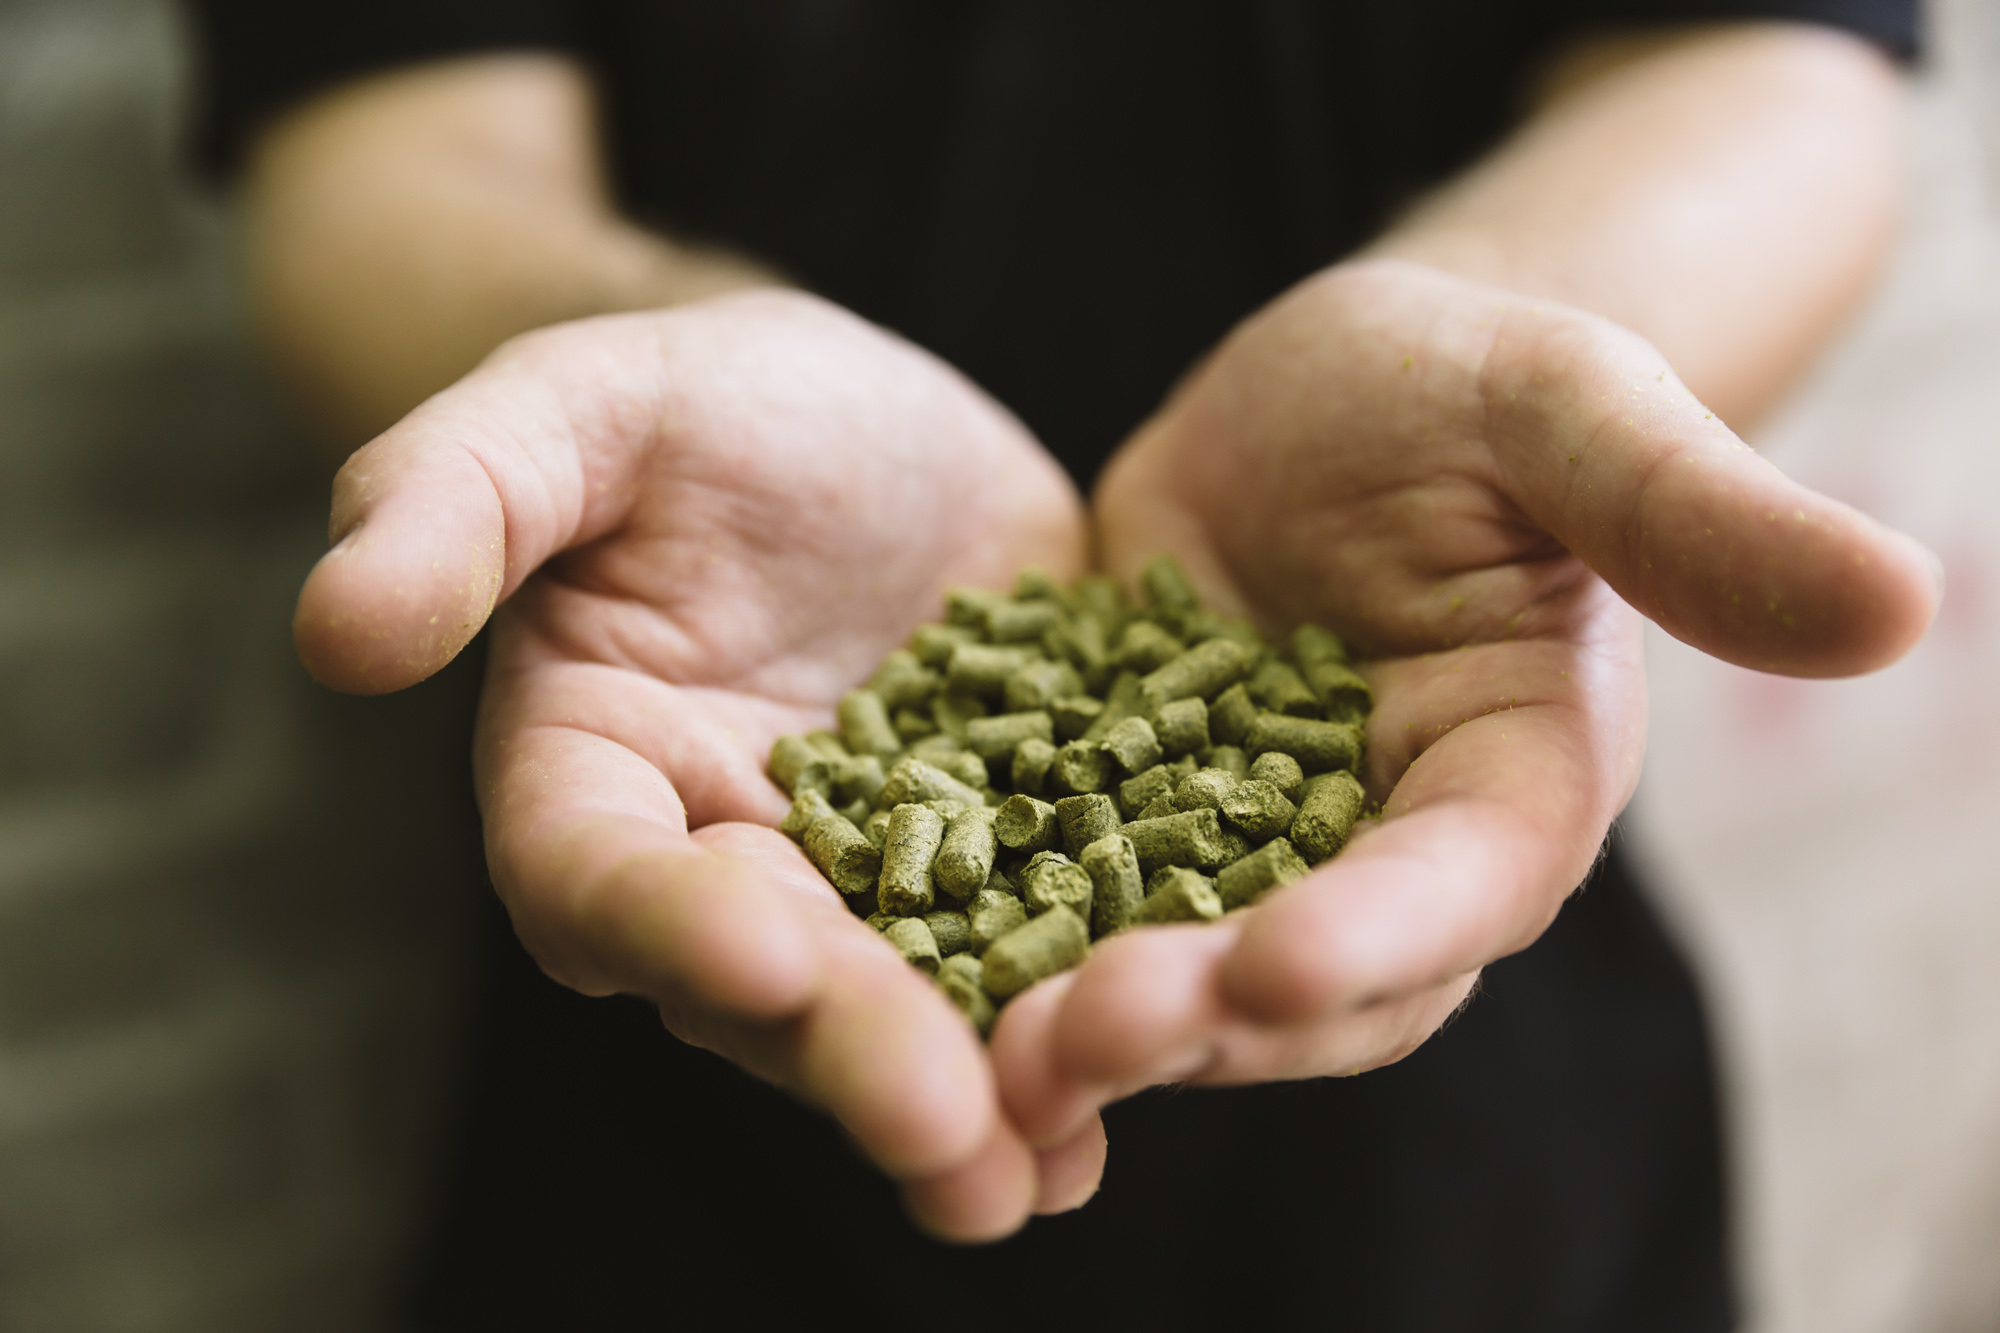 hops-hand-food-ingredient-photographers